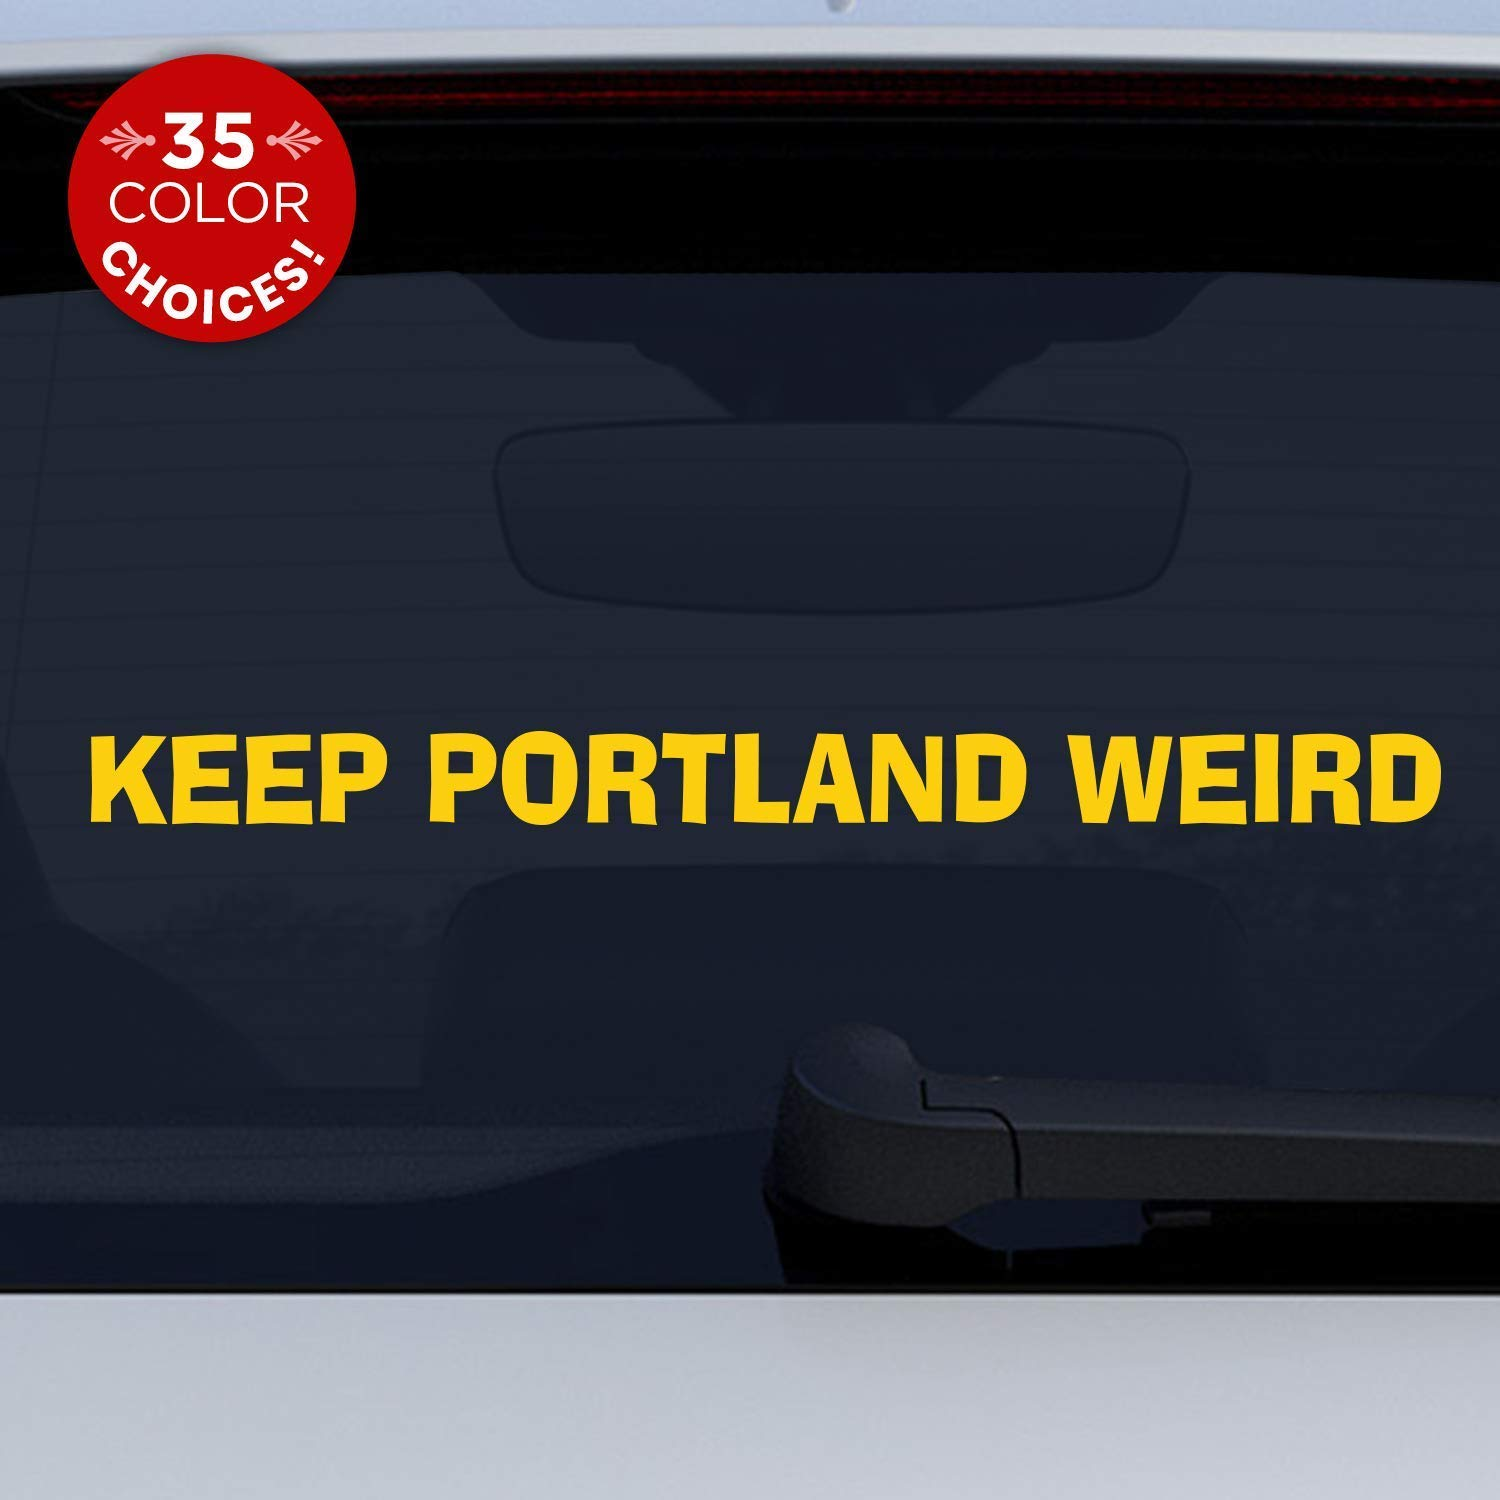 Keep portland weird vinyl decal for car computer walls show your oregon weirdness with this iconic sticker handmade